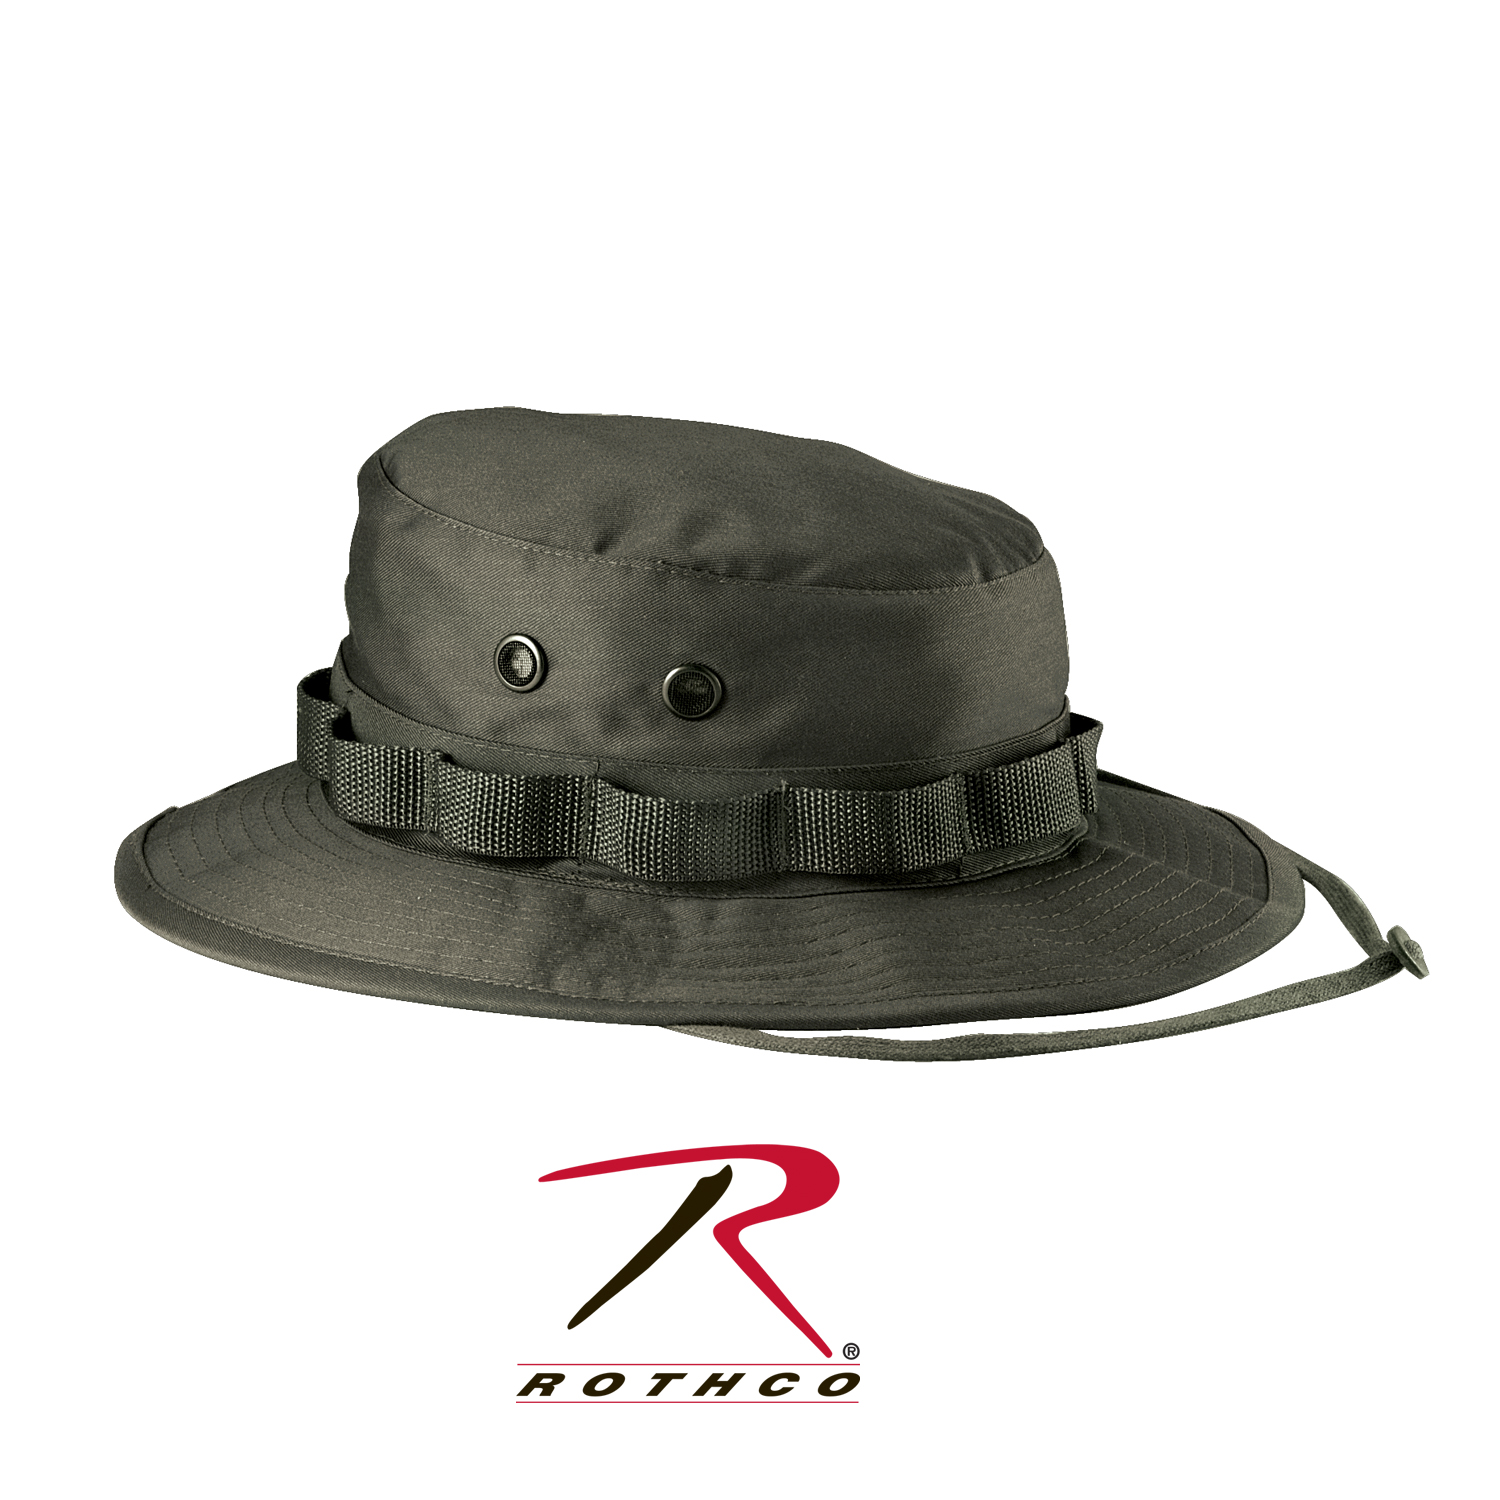 f2e7cb4071c Rothco Boonie Hat. Price Not Announced. Rothco s classic military style ...